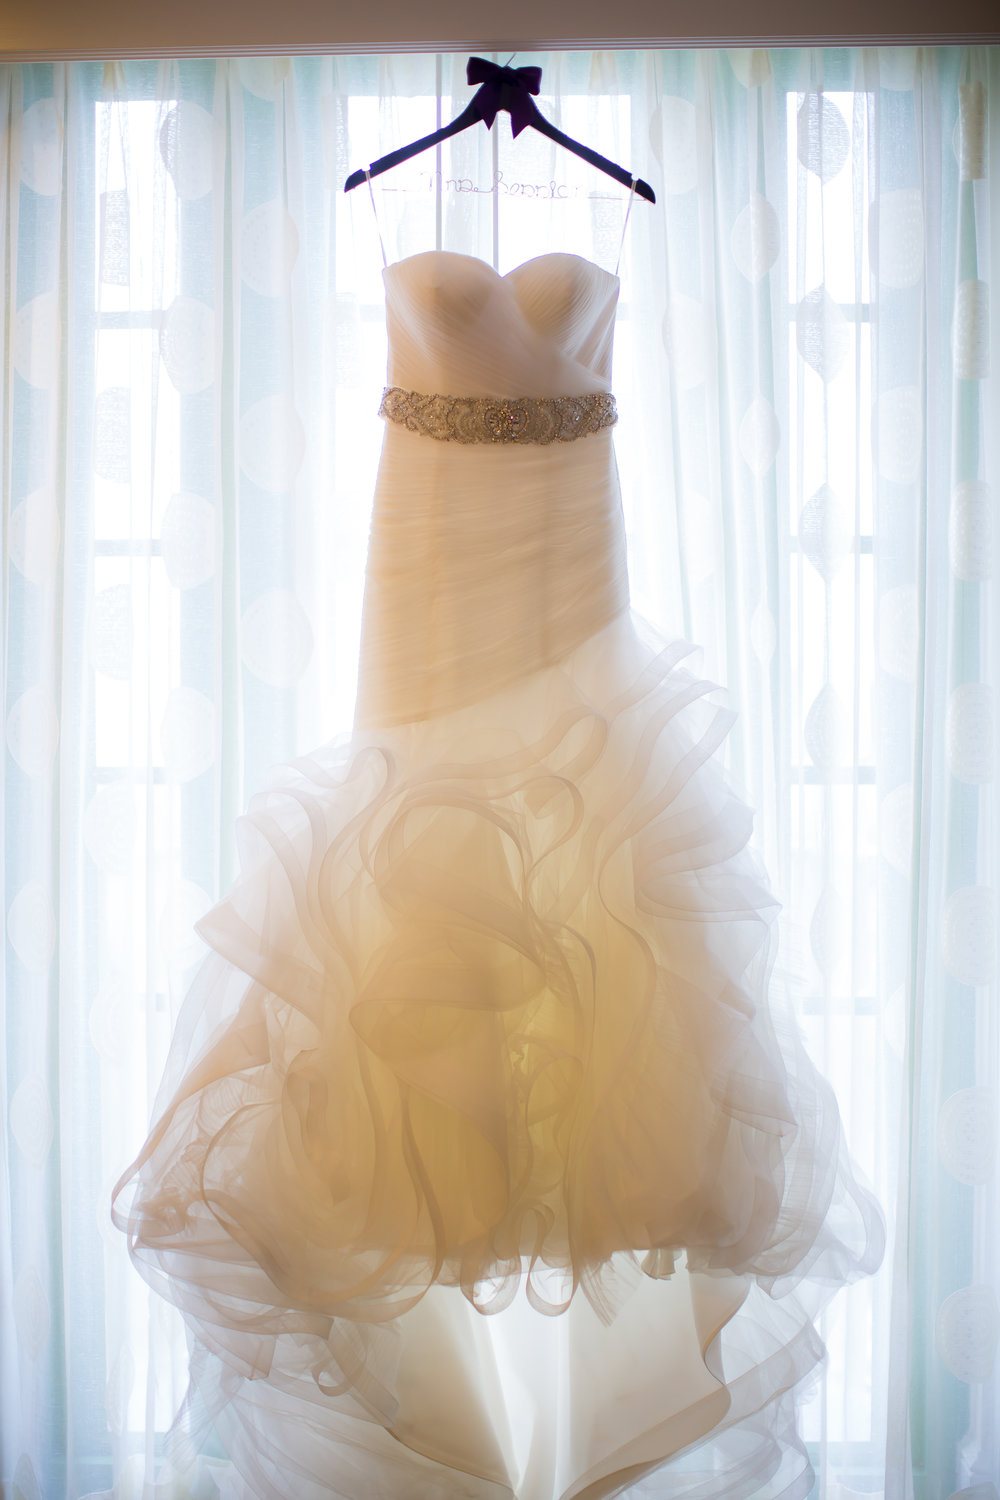 The bride's gown featured layers of soft tulle